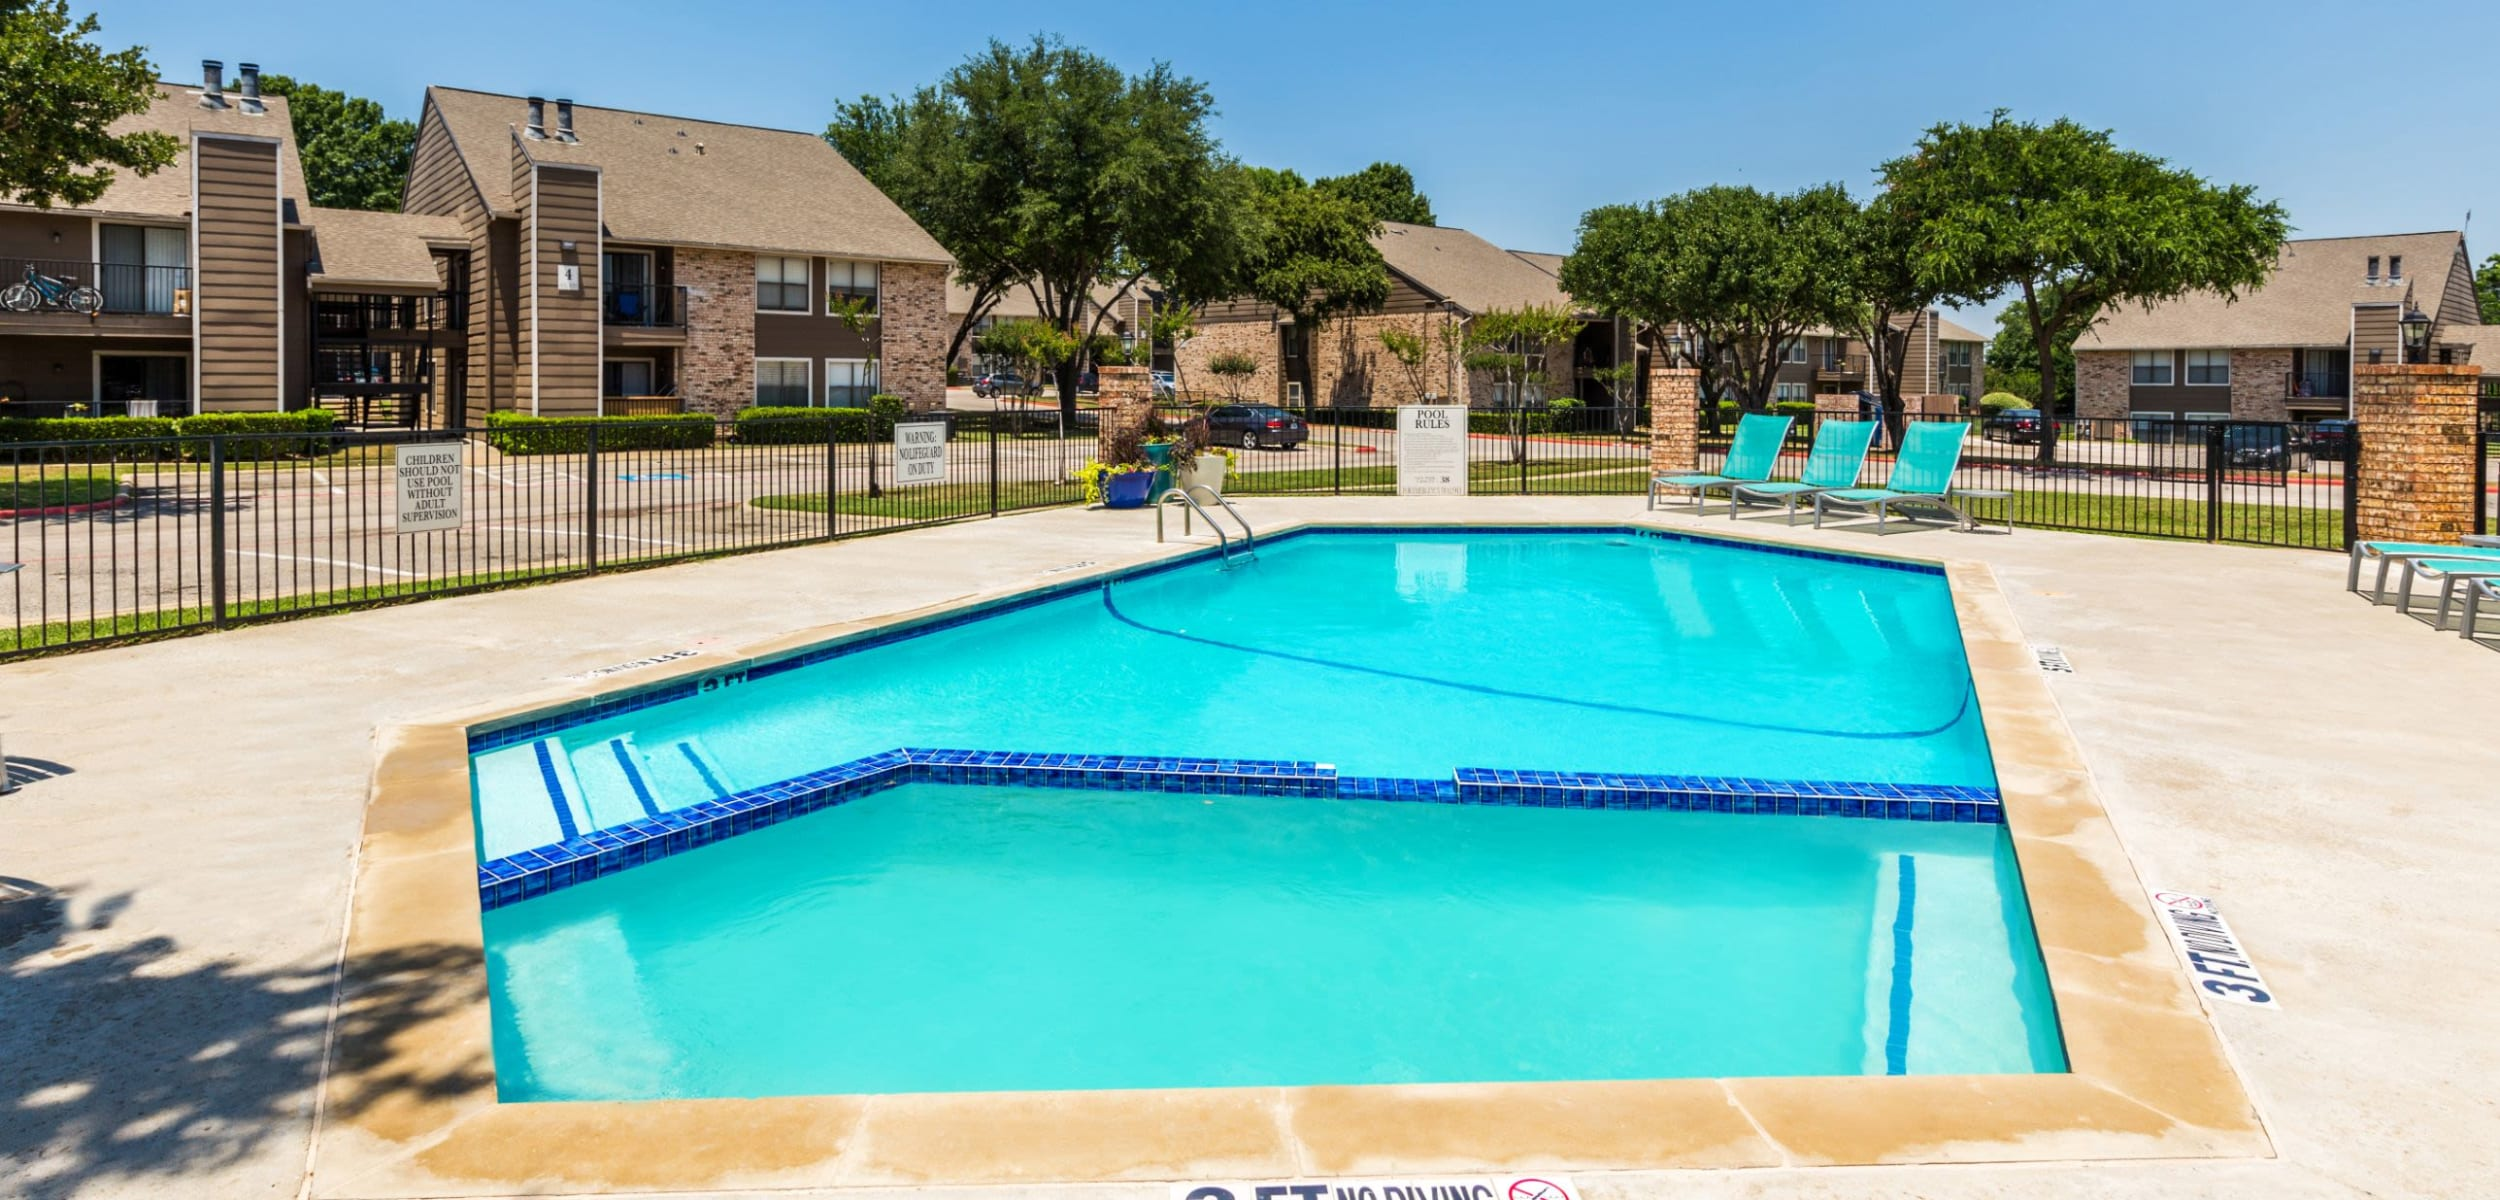 Bright pool with sun chairs at The Park at Flower Mound in Flower Mound, Texas